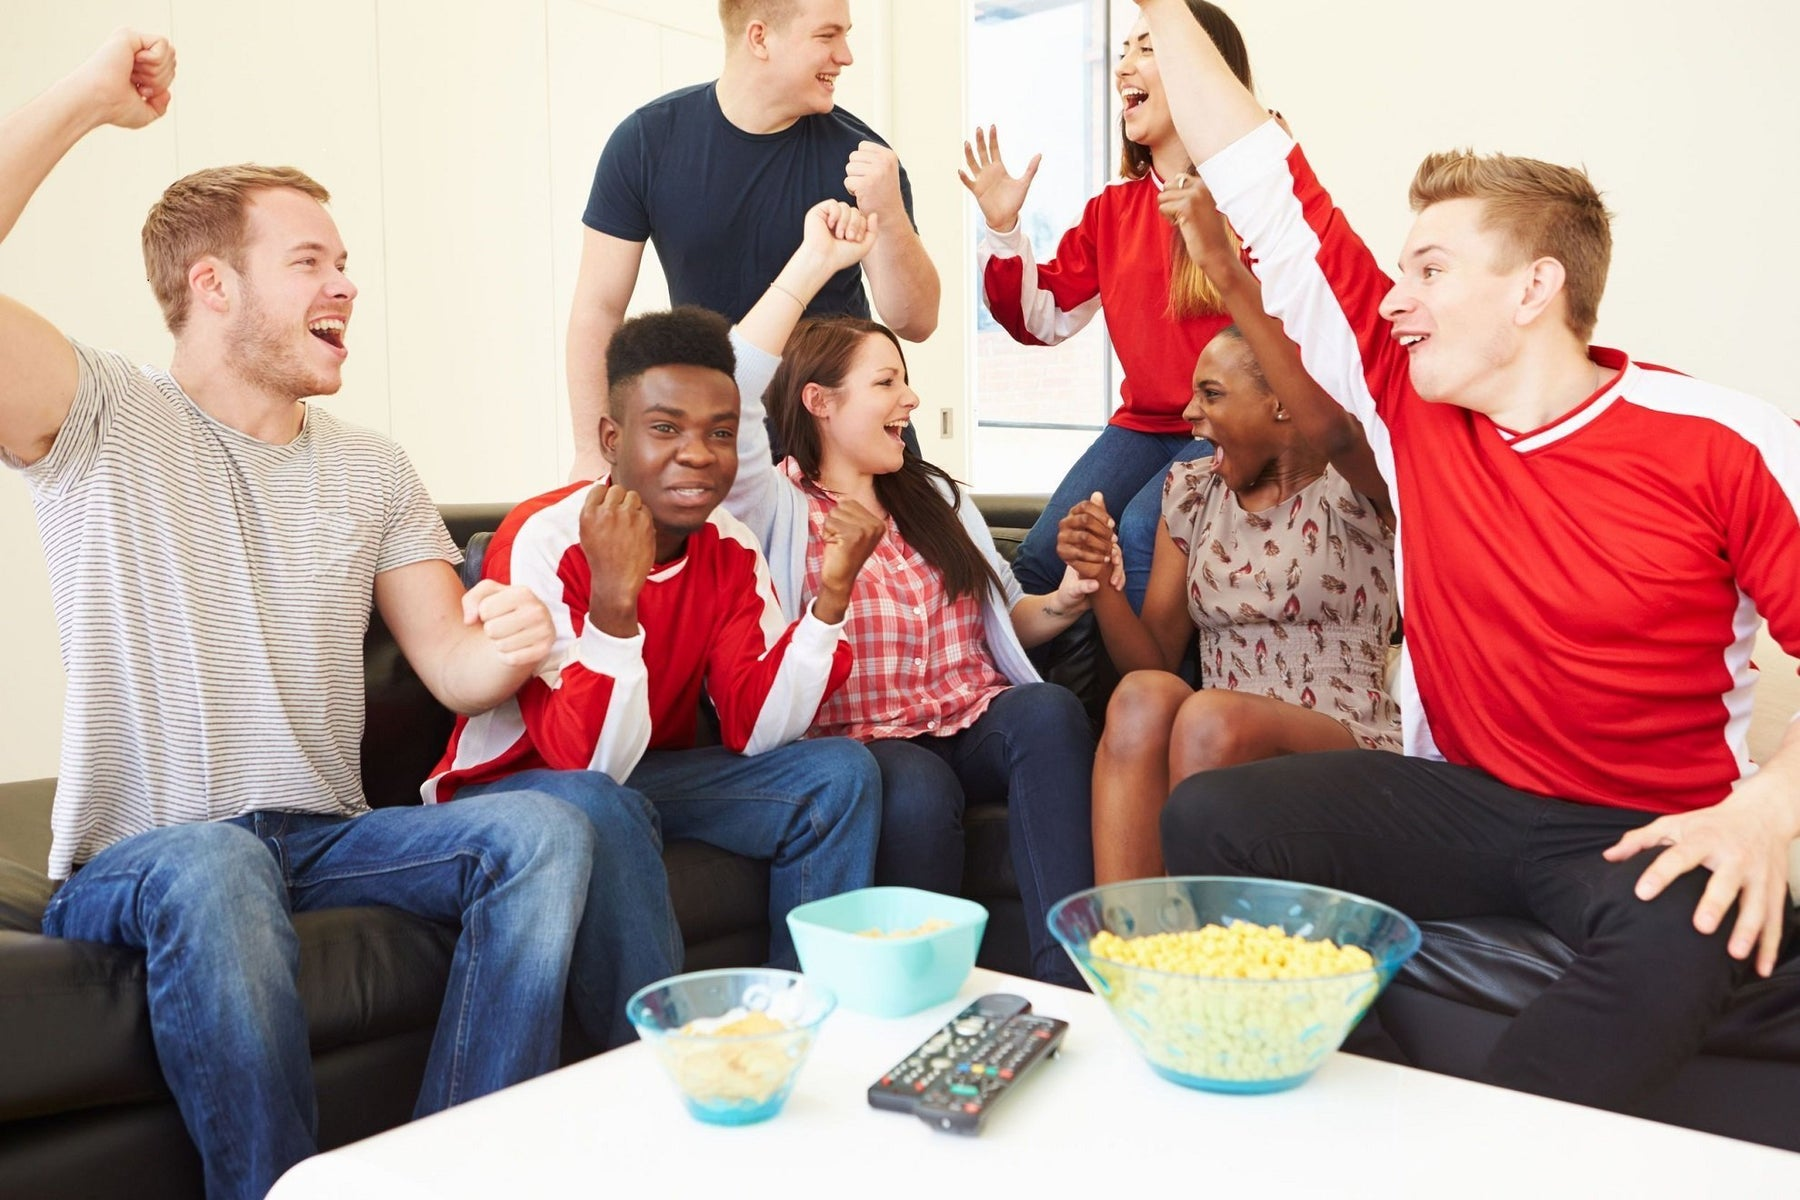 How to Host a Football Game Watching Party